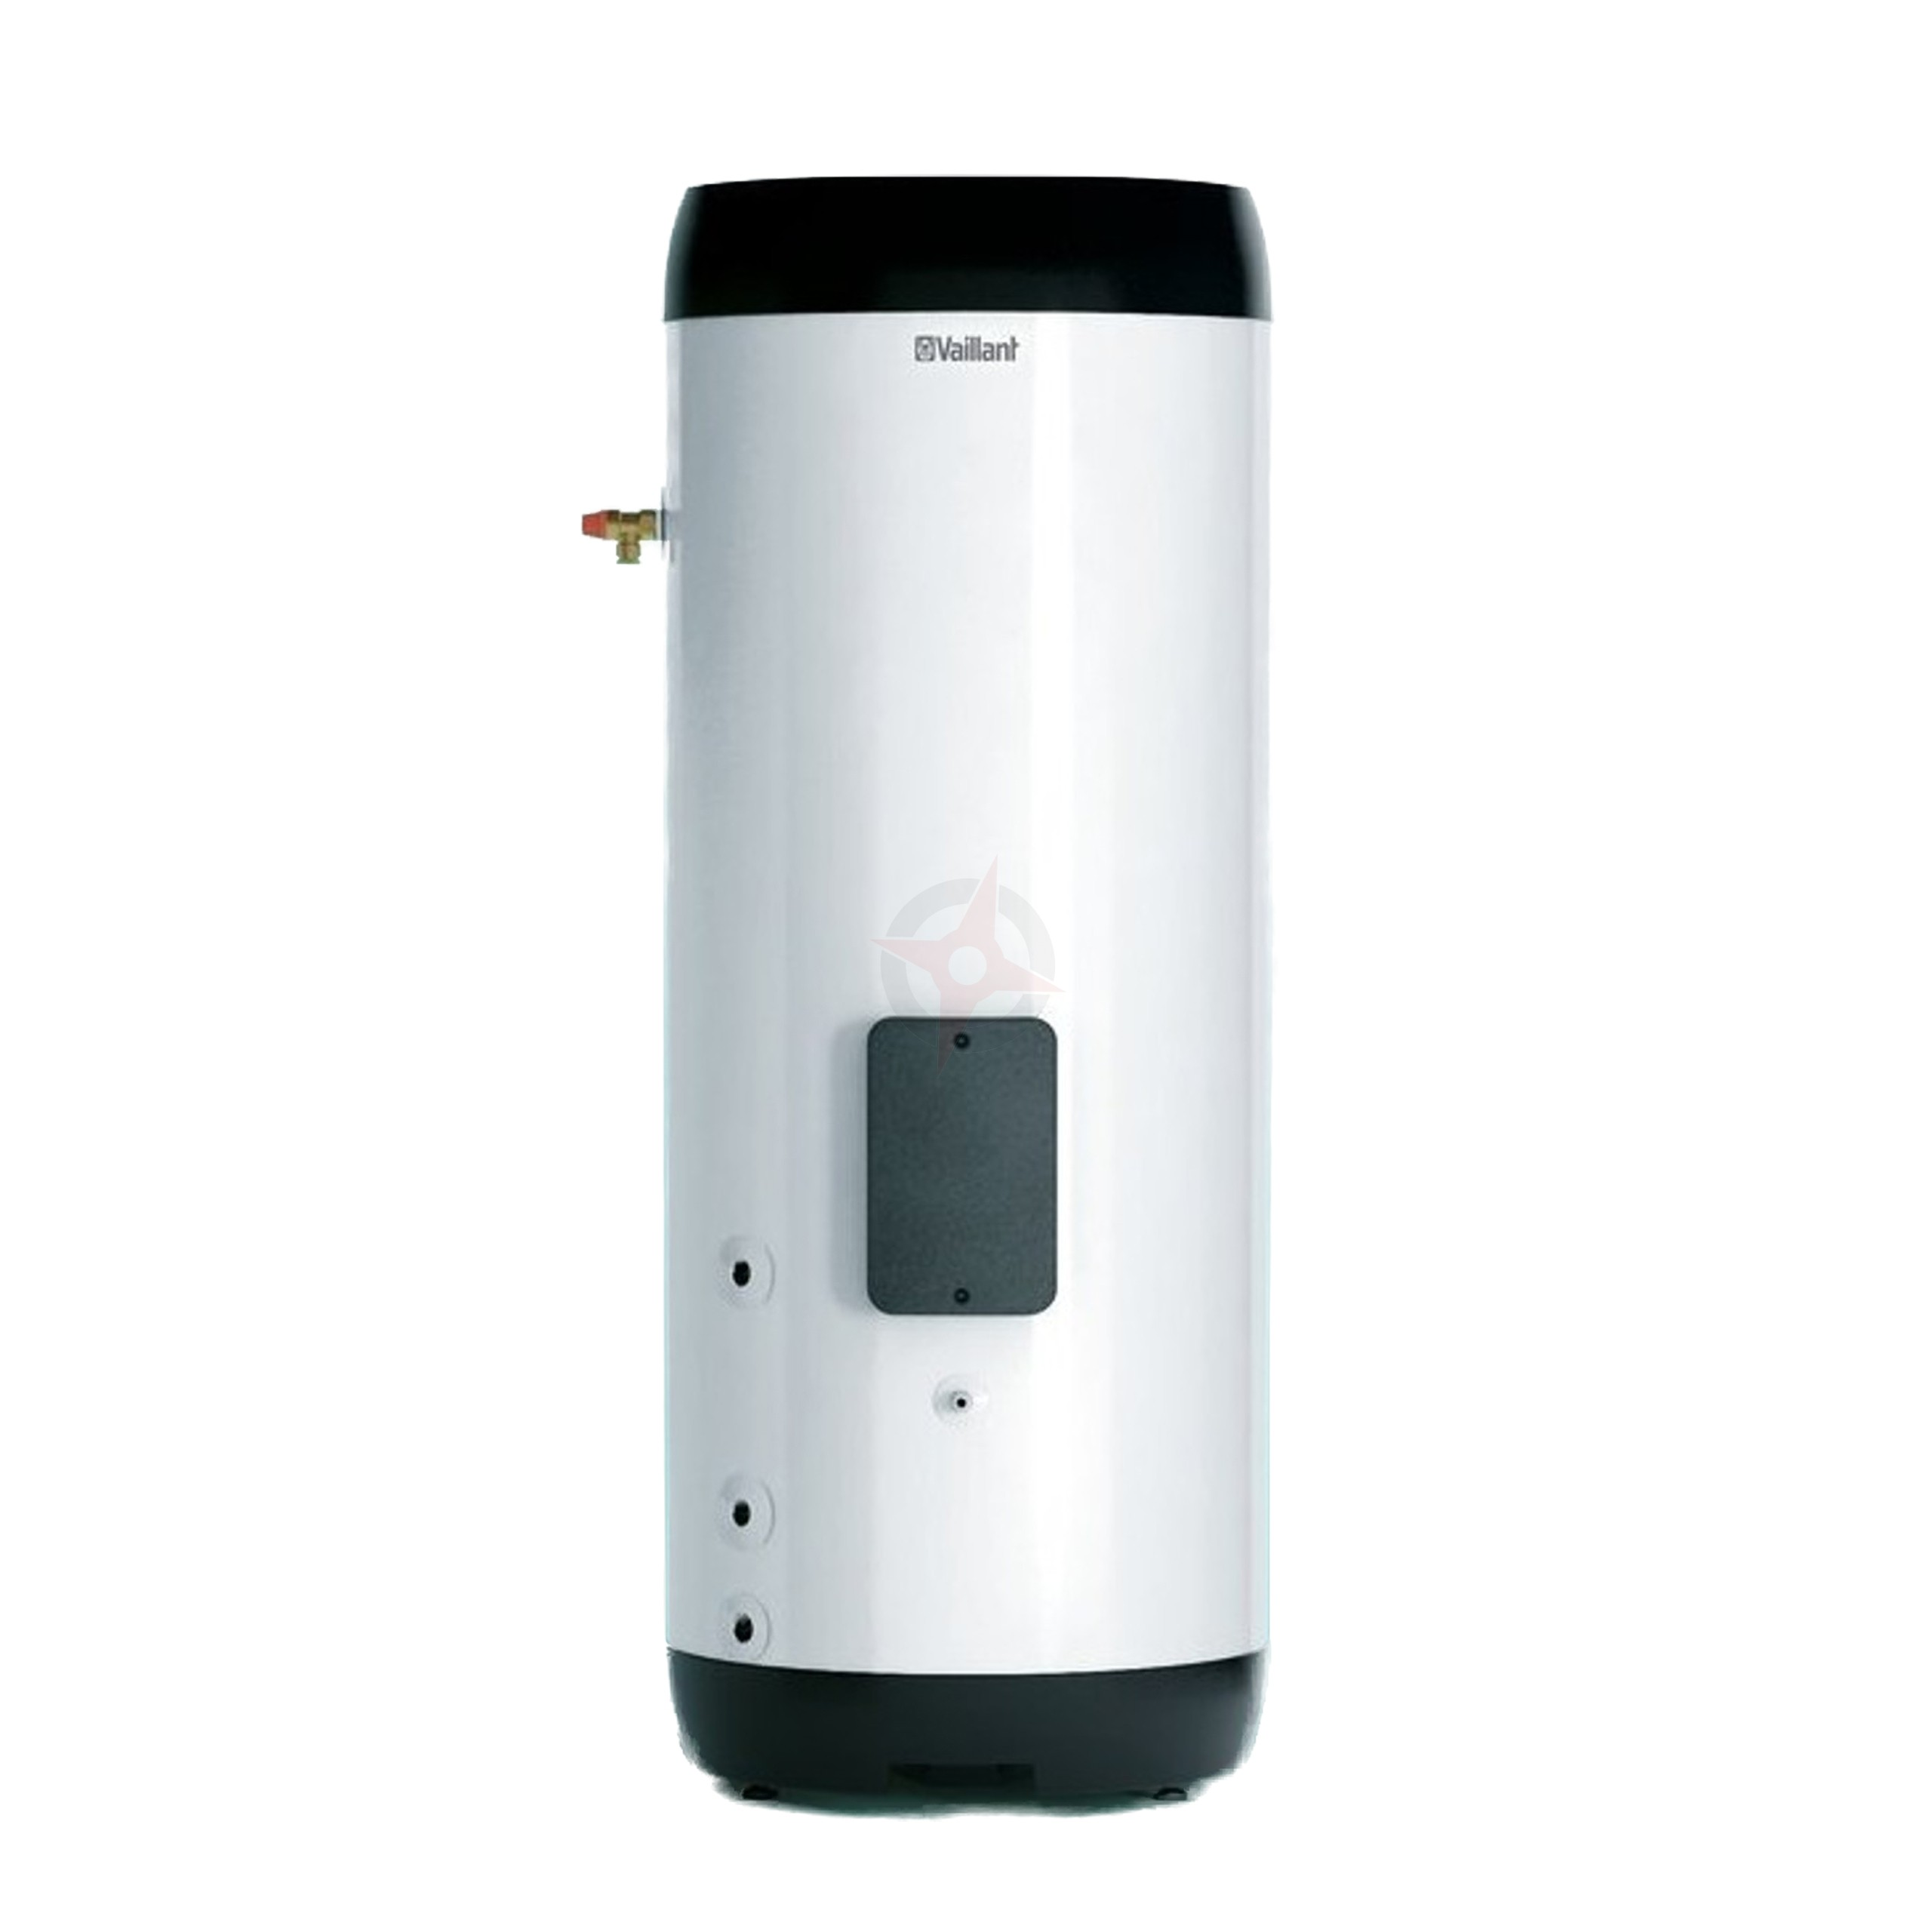 Vaillant uniSTOR 200 Unvented Hot Water Cylinder